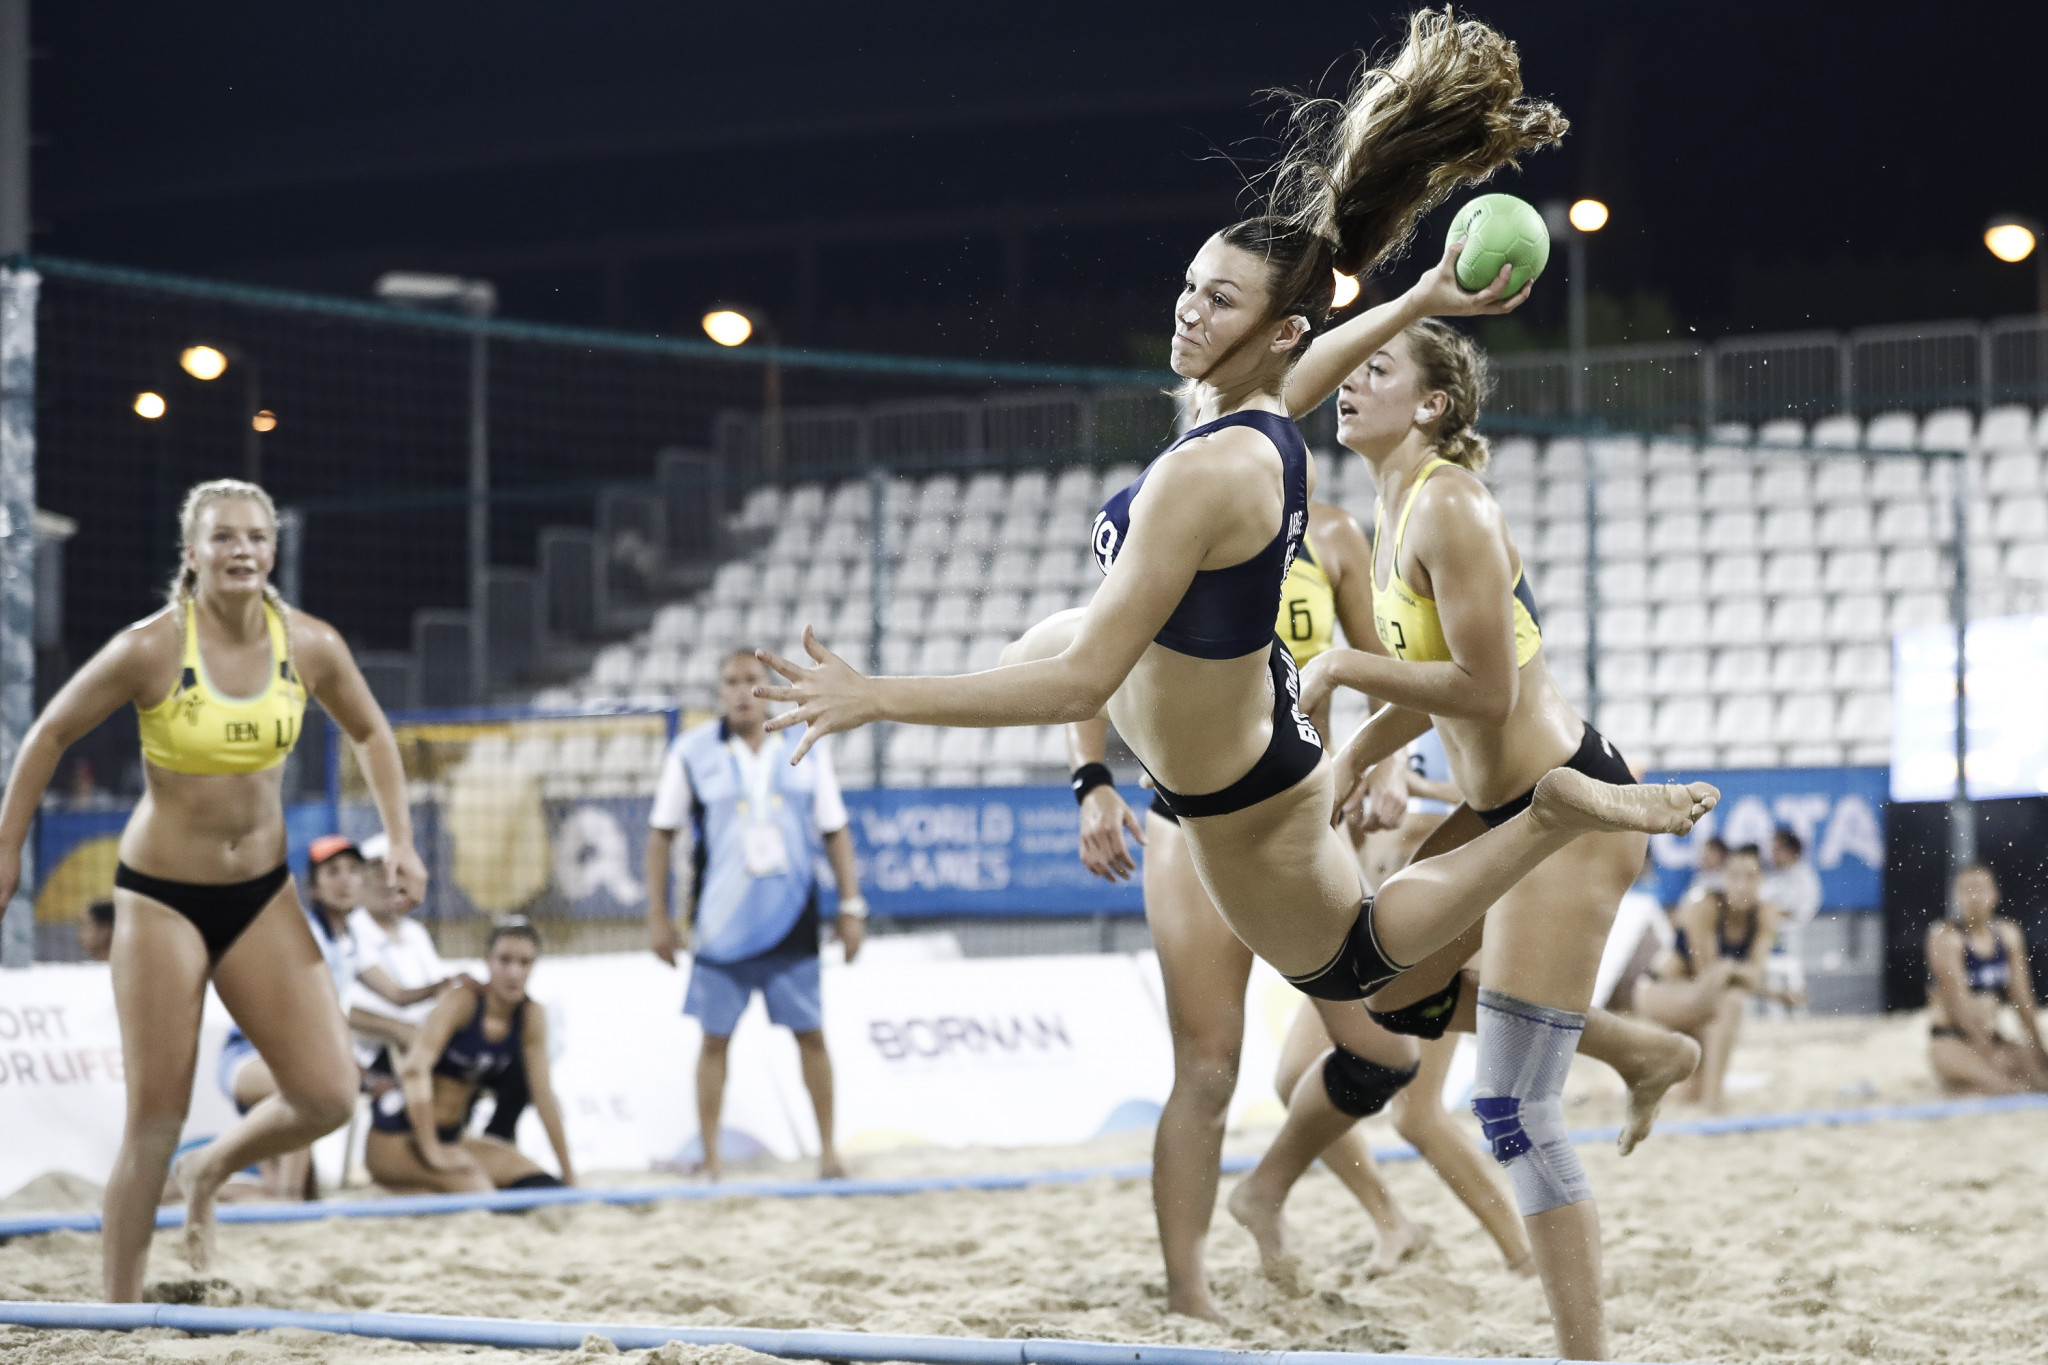 Flying goals were a feature of the handball competition ©ANOC